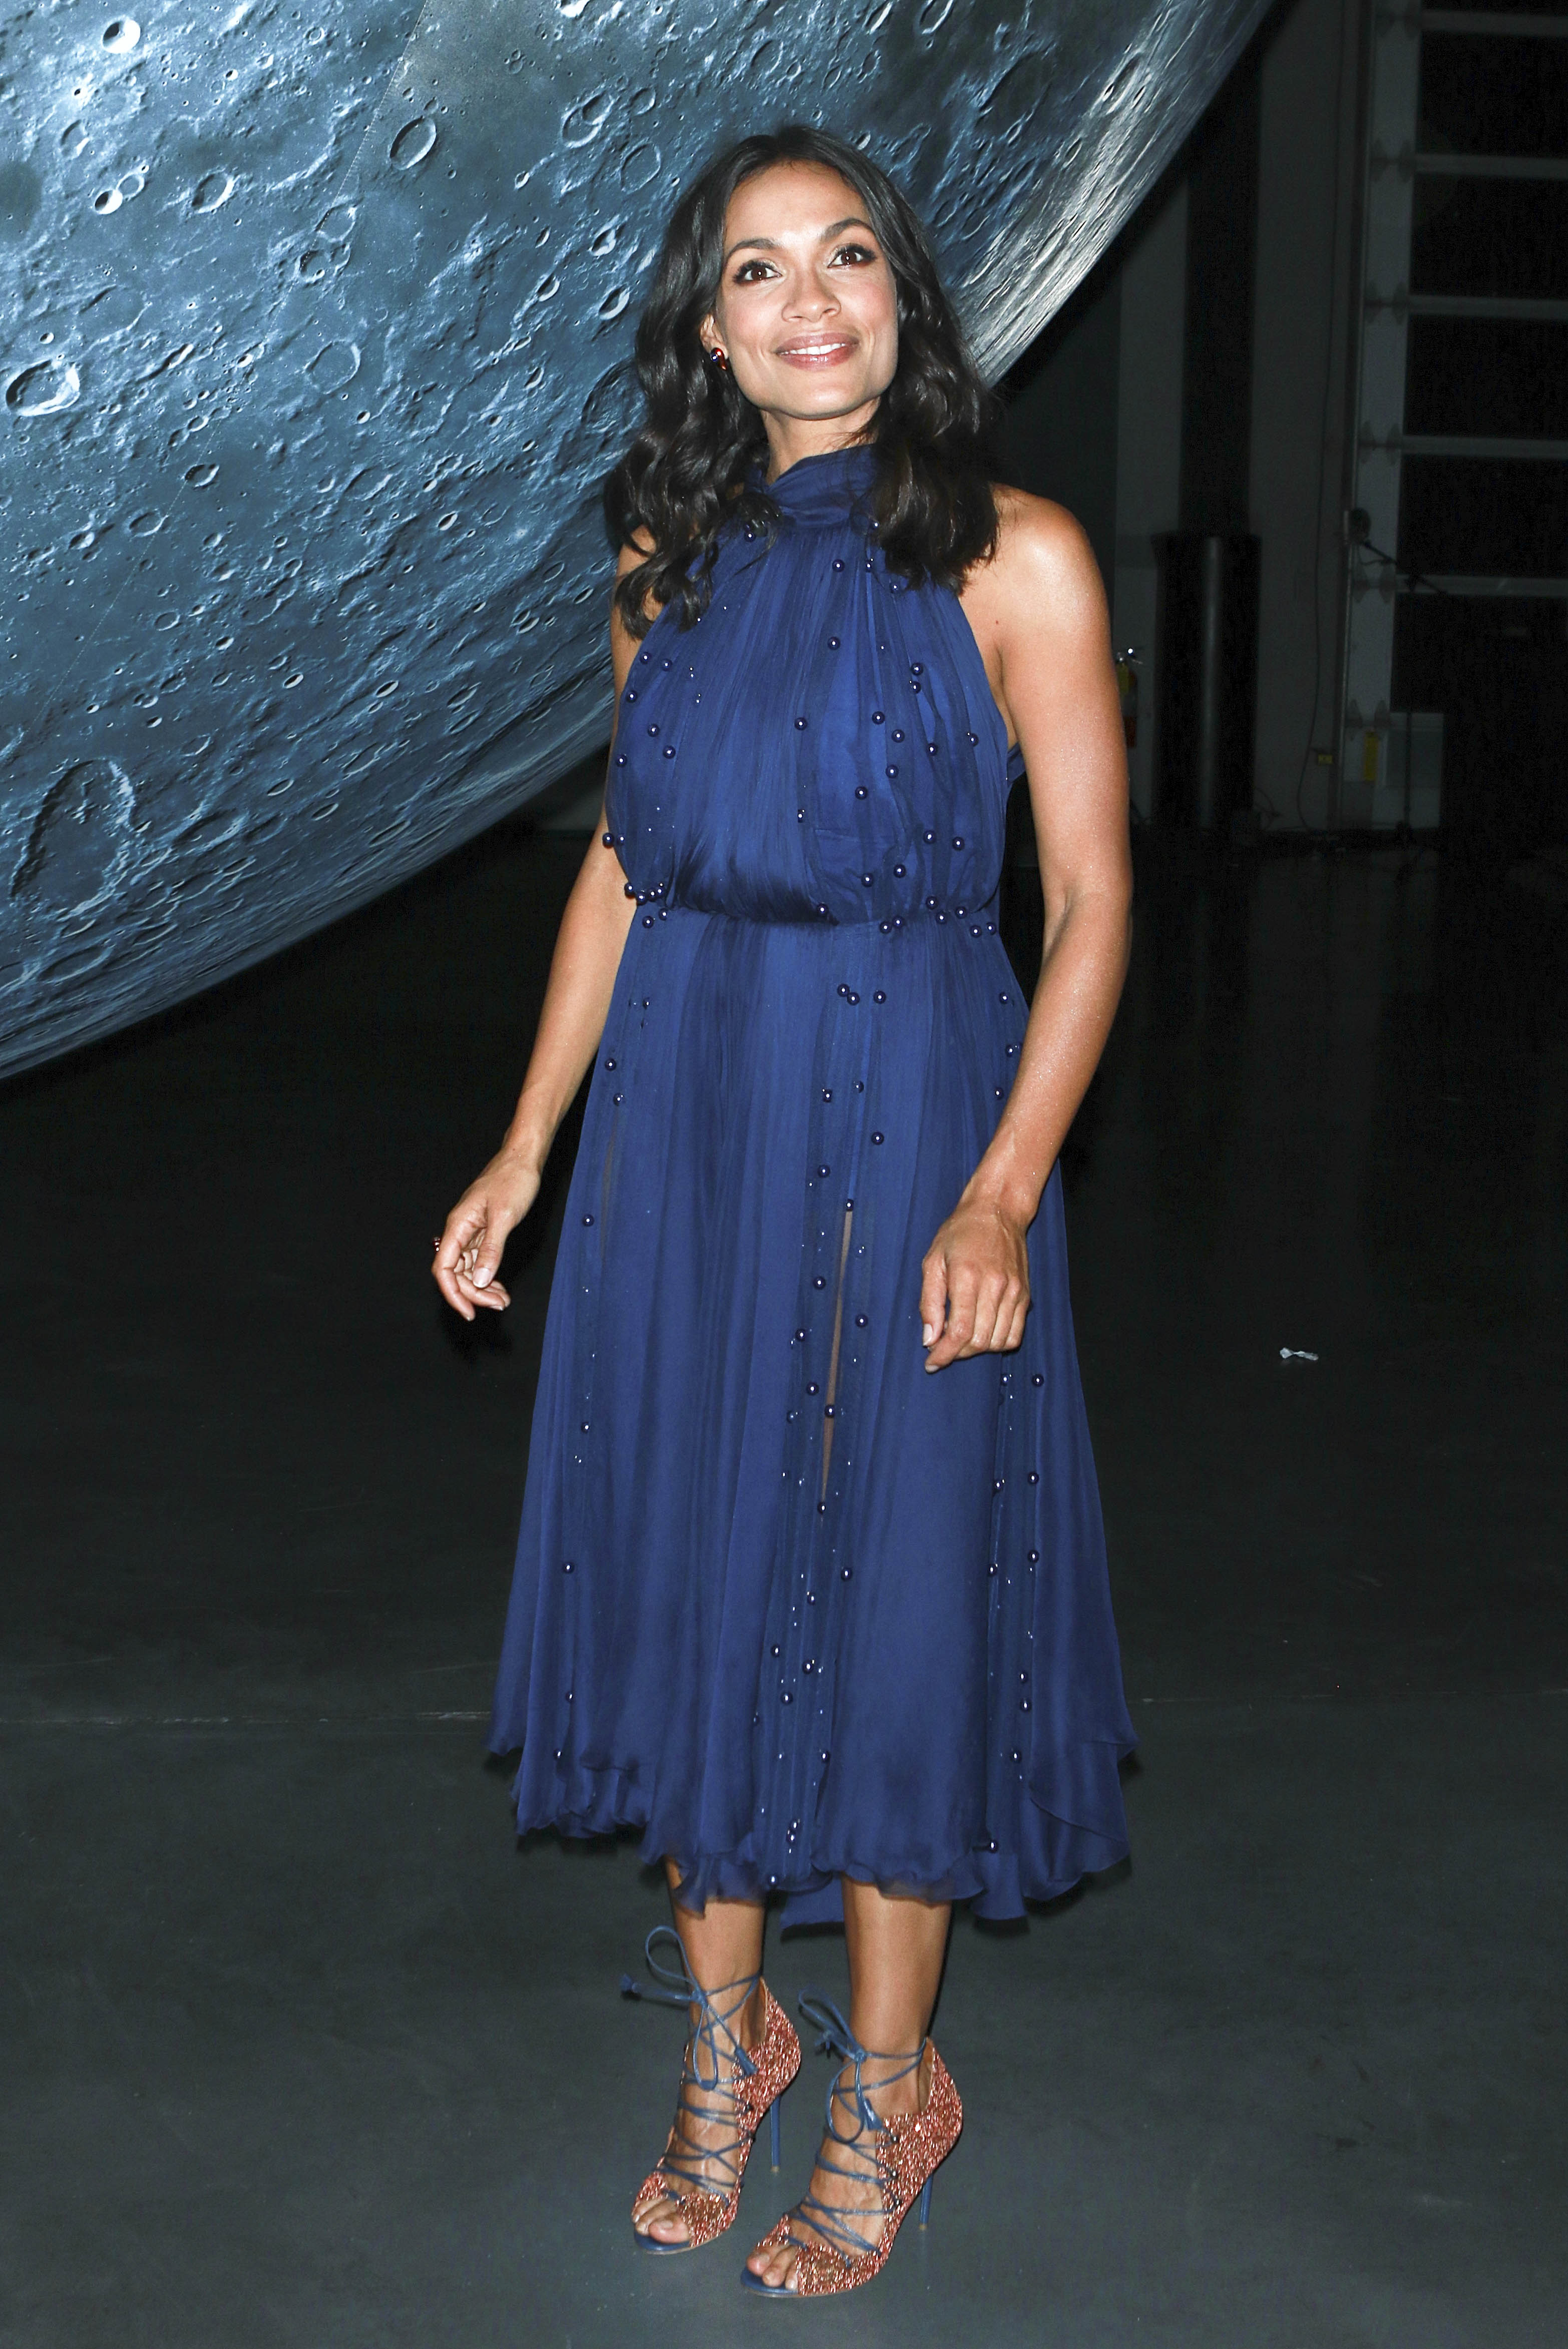 Rosario Dawson in Sheer Dress at the Opening of Museum of Artemis: Life on the Moon Exhibition